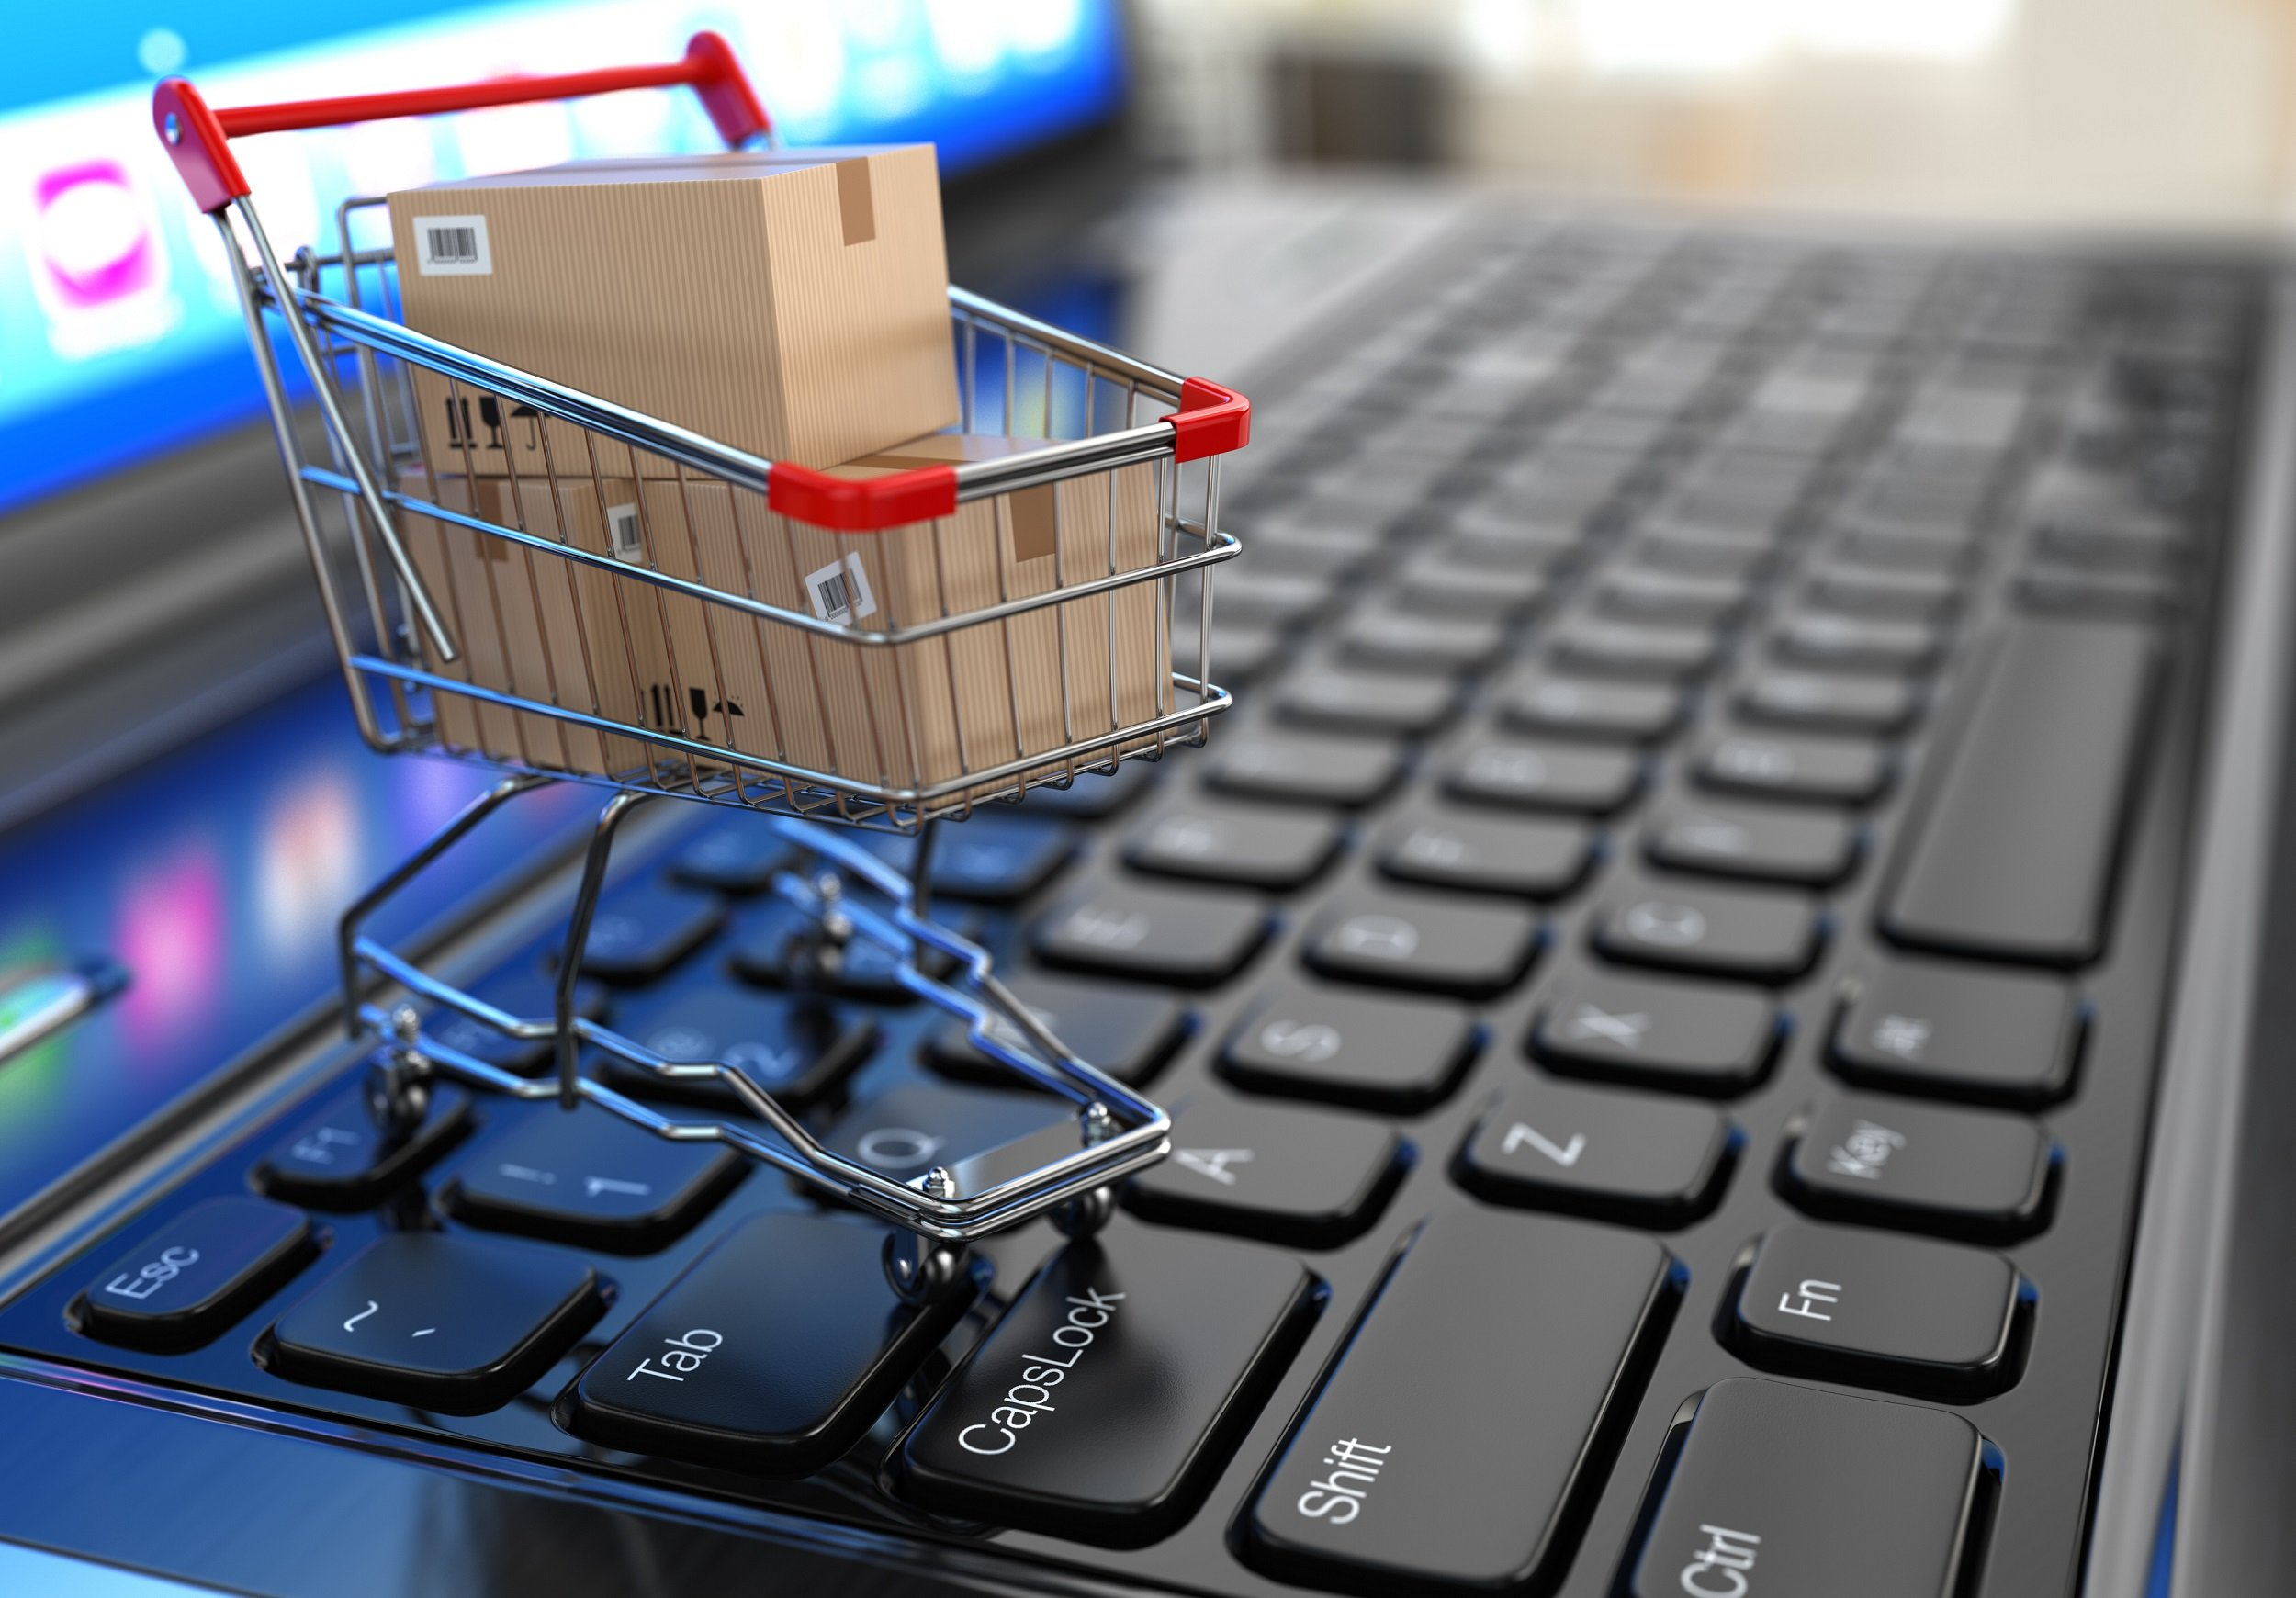 E-commerce Fulfillment - Serving the Needs of the Online Market